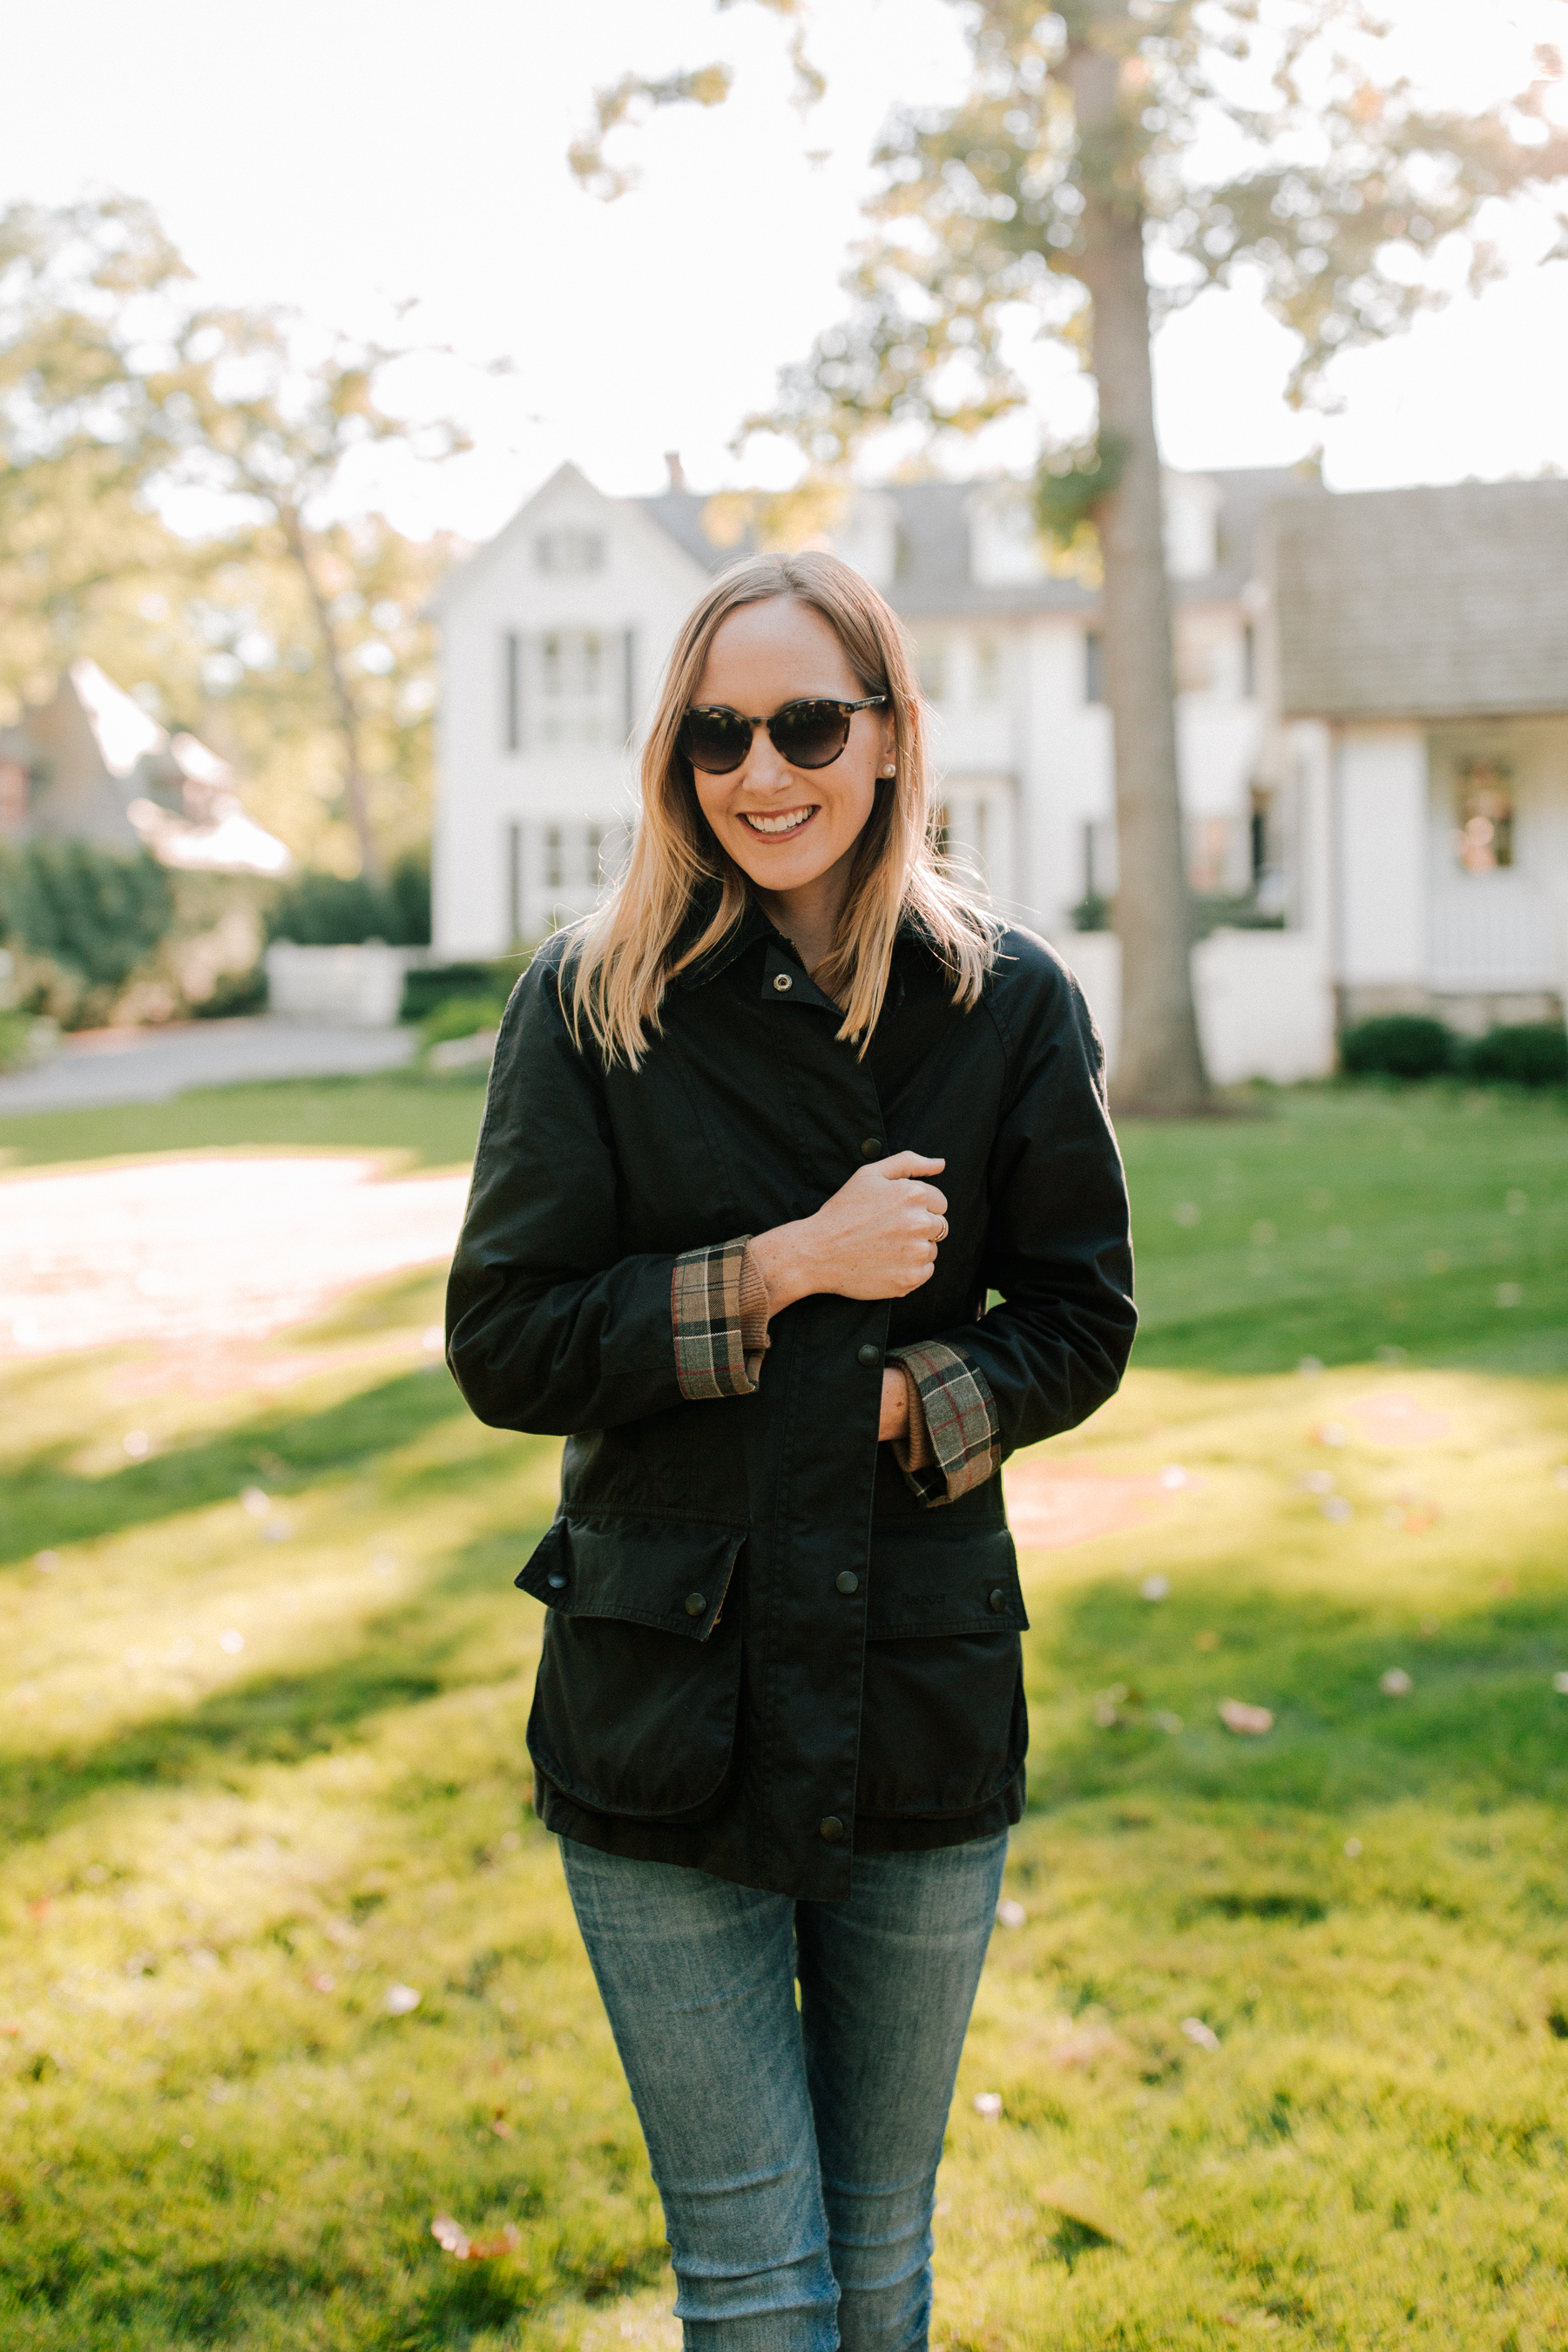 Barbour Jacket  - Kelly in the City